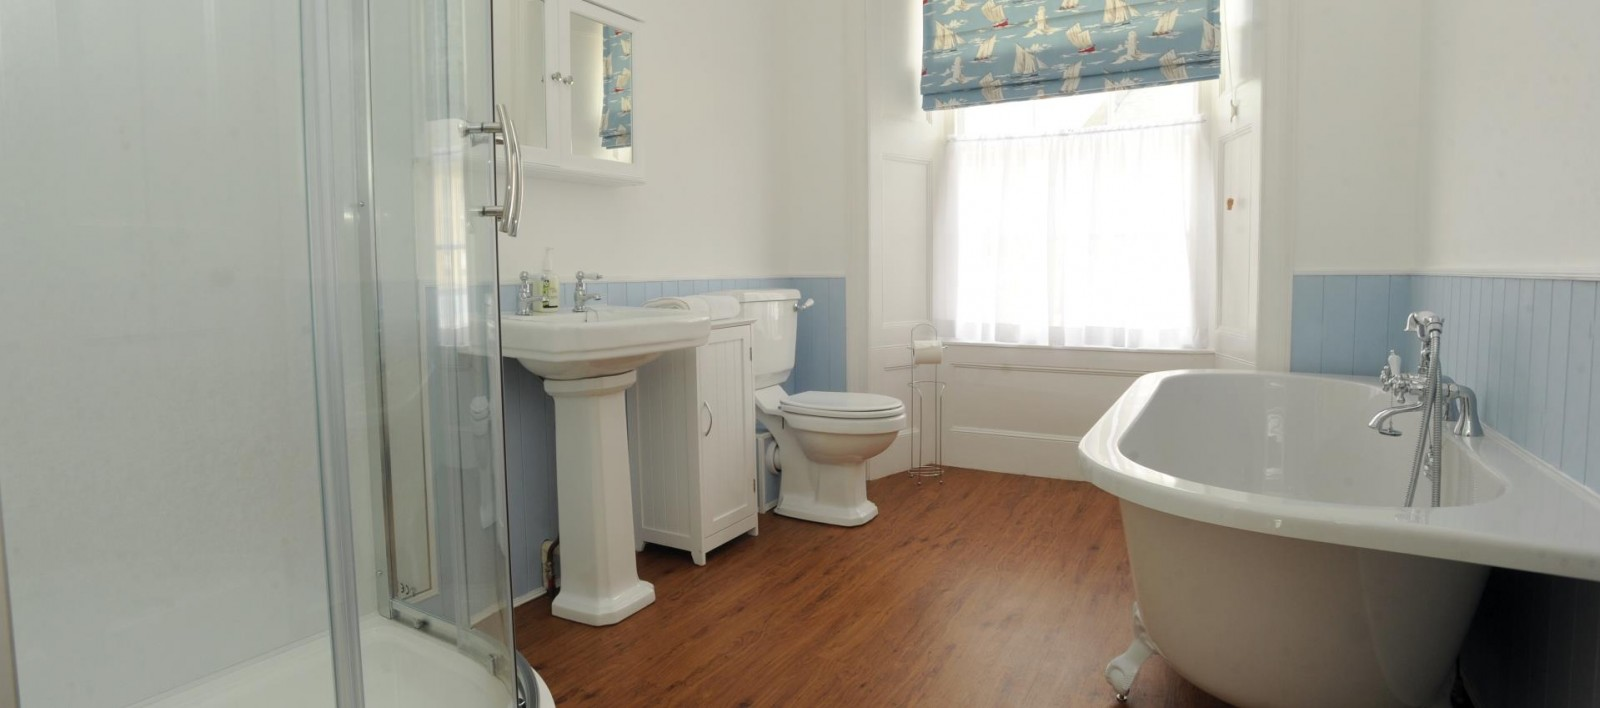 Luxury Holiday Home St Davids Pembrokeshire